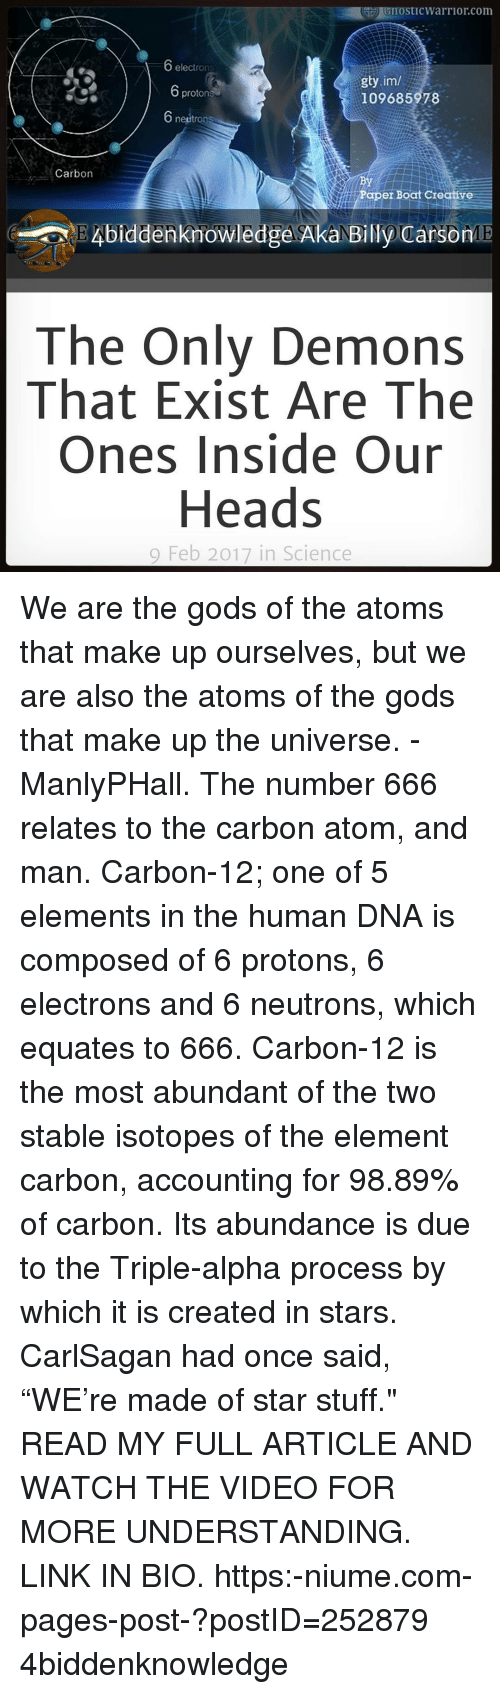 "Memes, 🤖, and Dna: GnostICWarrior com  electrons  gty.im/  protons  109685978  neutron  Carbon  Paper Boat Creative  Knowledge AkaNE  CarsonME  The Only Demons  That Exist Are The  Ones Inside Our  Heads  9 Feb 2017 in Science We are the gods of the atoms that make up ourselves, but we are also the atoms of the gods that make up the universe. - ManlyPHall. The number 666 relates to the carbon atom, and man. Carbon-12; one of 5 elements in the human DNA is composed of 6 protons, 6 electrons and 6 neutrons, which equates to 666. Carbon-12 is the most abundant of the two stable isotopes of the element carbon, accounting for 98.89% of carbon. Its abundance is due to the Triple-alpha process by which it is created in stars. CarlSagan had once said, ""WE're made of star stuff."" READ MY FULL ARTICLE AND WATCH THE VIDEO FOR MORE UNDERSTANDING. LINK IN BIO. https:-niume.com-pages-post-?postID=252879 4biddenknowledge"